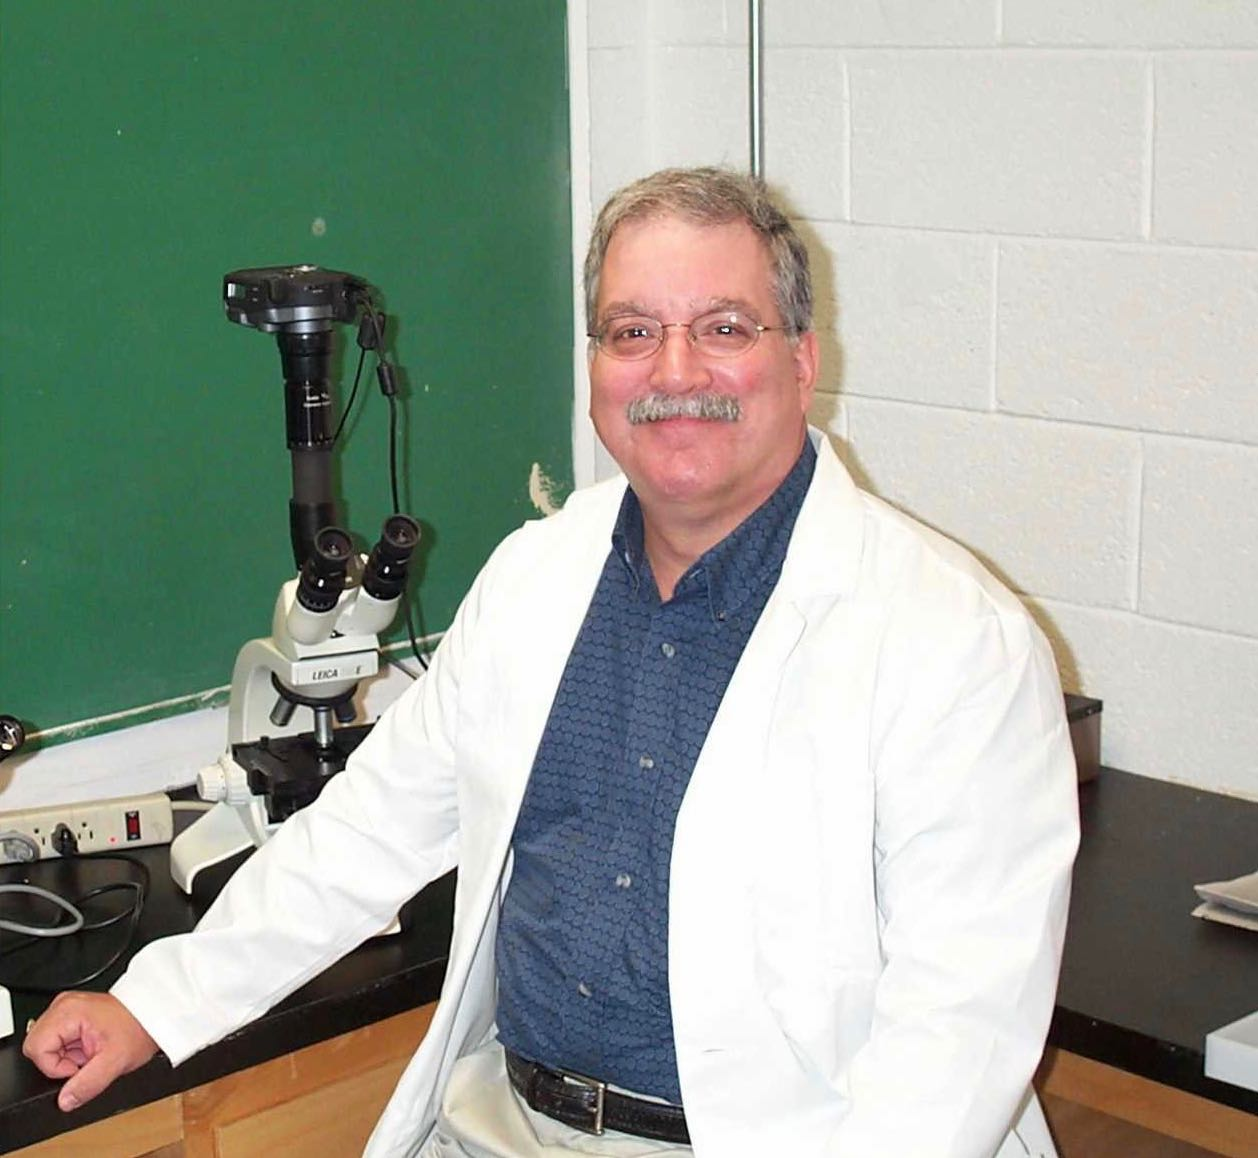 Dr. David K. Mills, a professor at Louisiana Tech University, is one of the state's leading researchers on using 3D printing in biomedical research. Photo credit: Courtesy of David K. Mills.